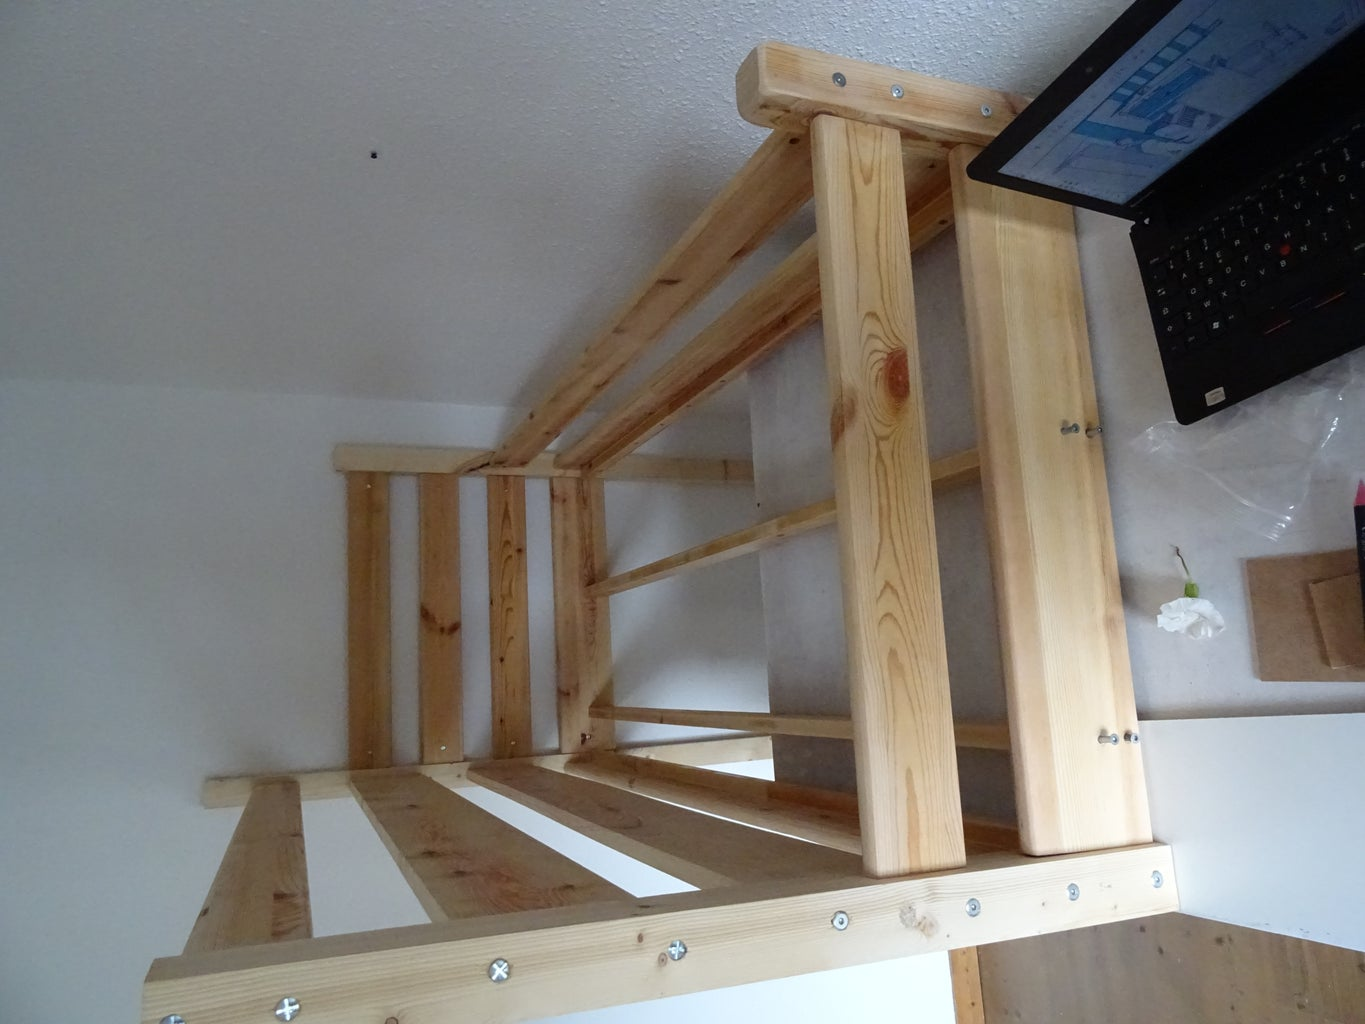 Build the Upper Bed